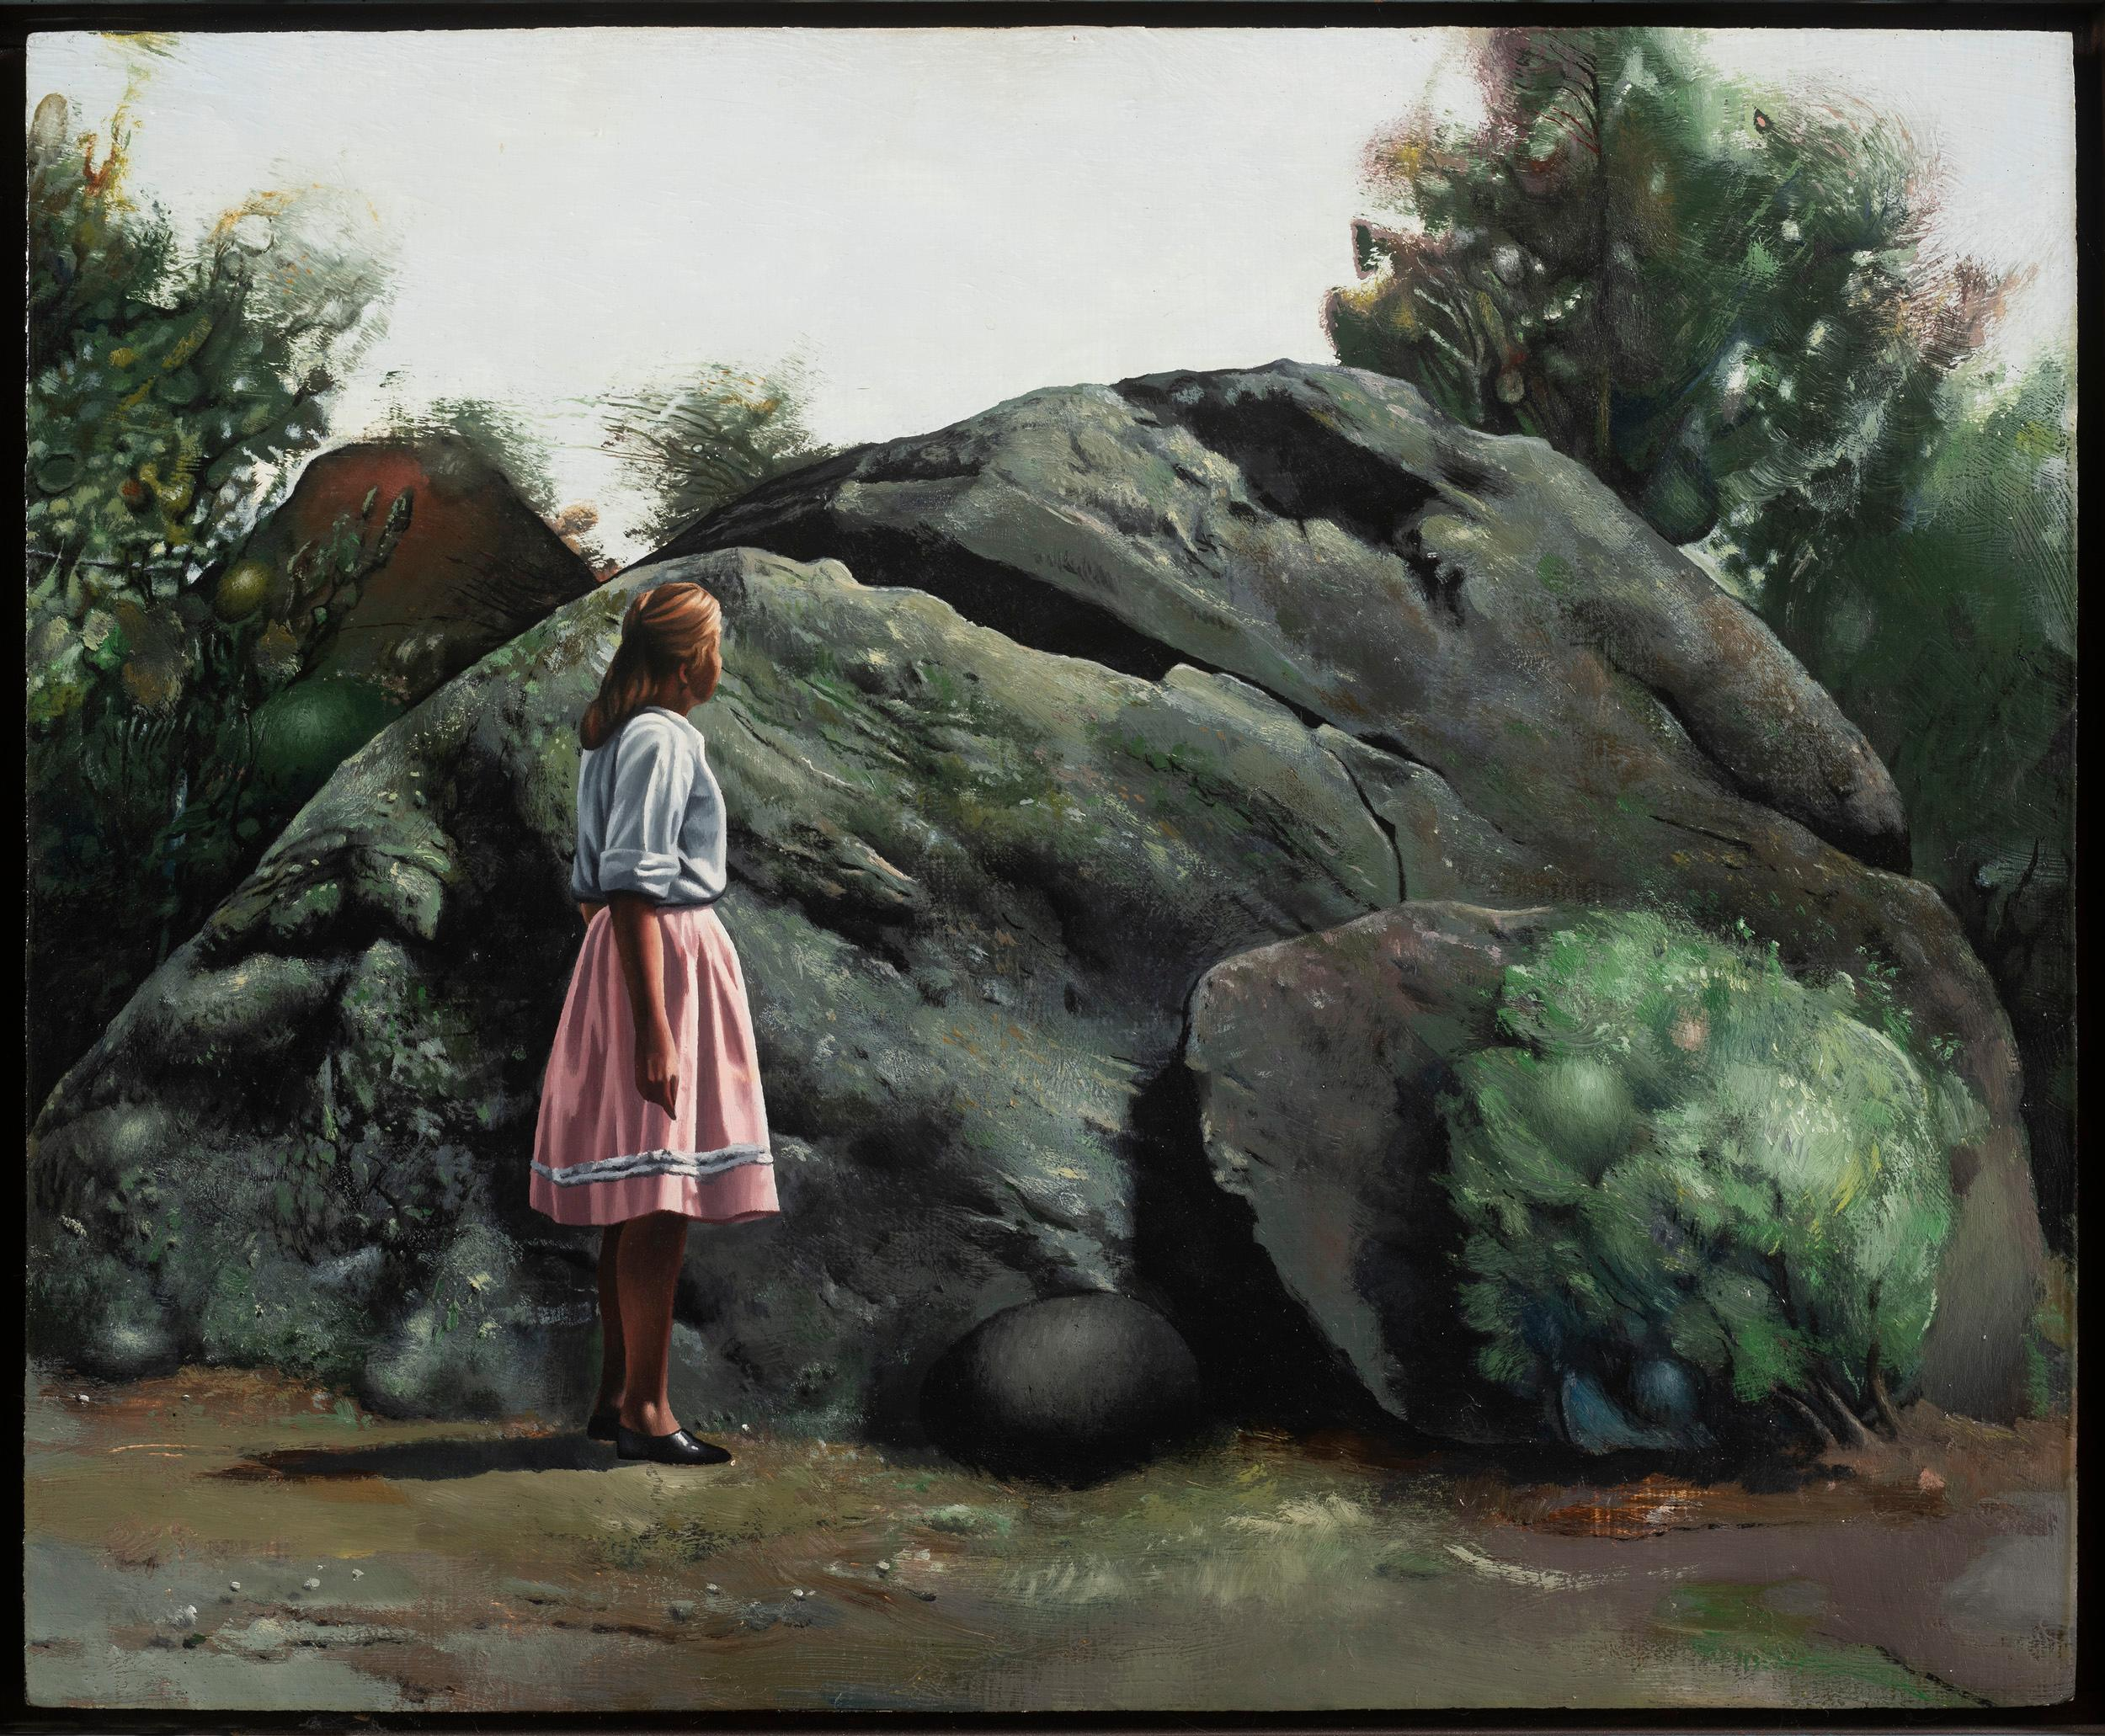 Woman and Rock, 1975